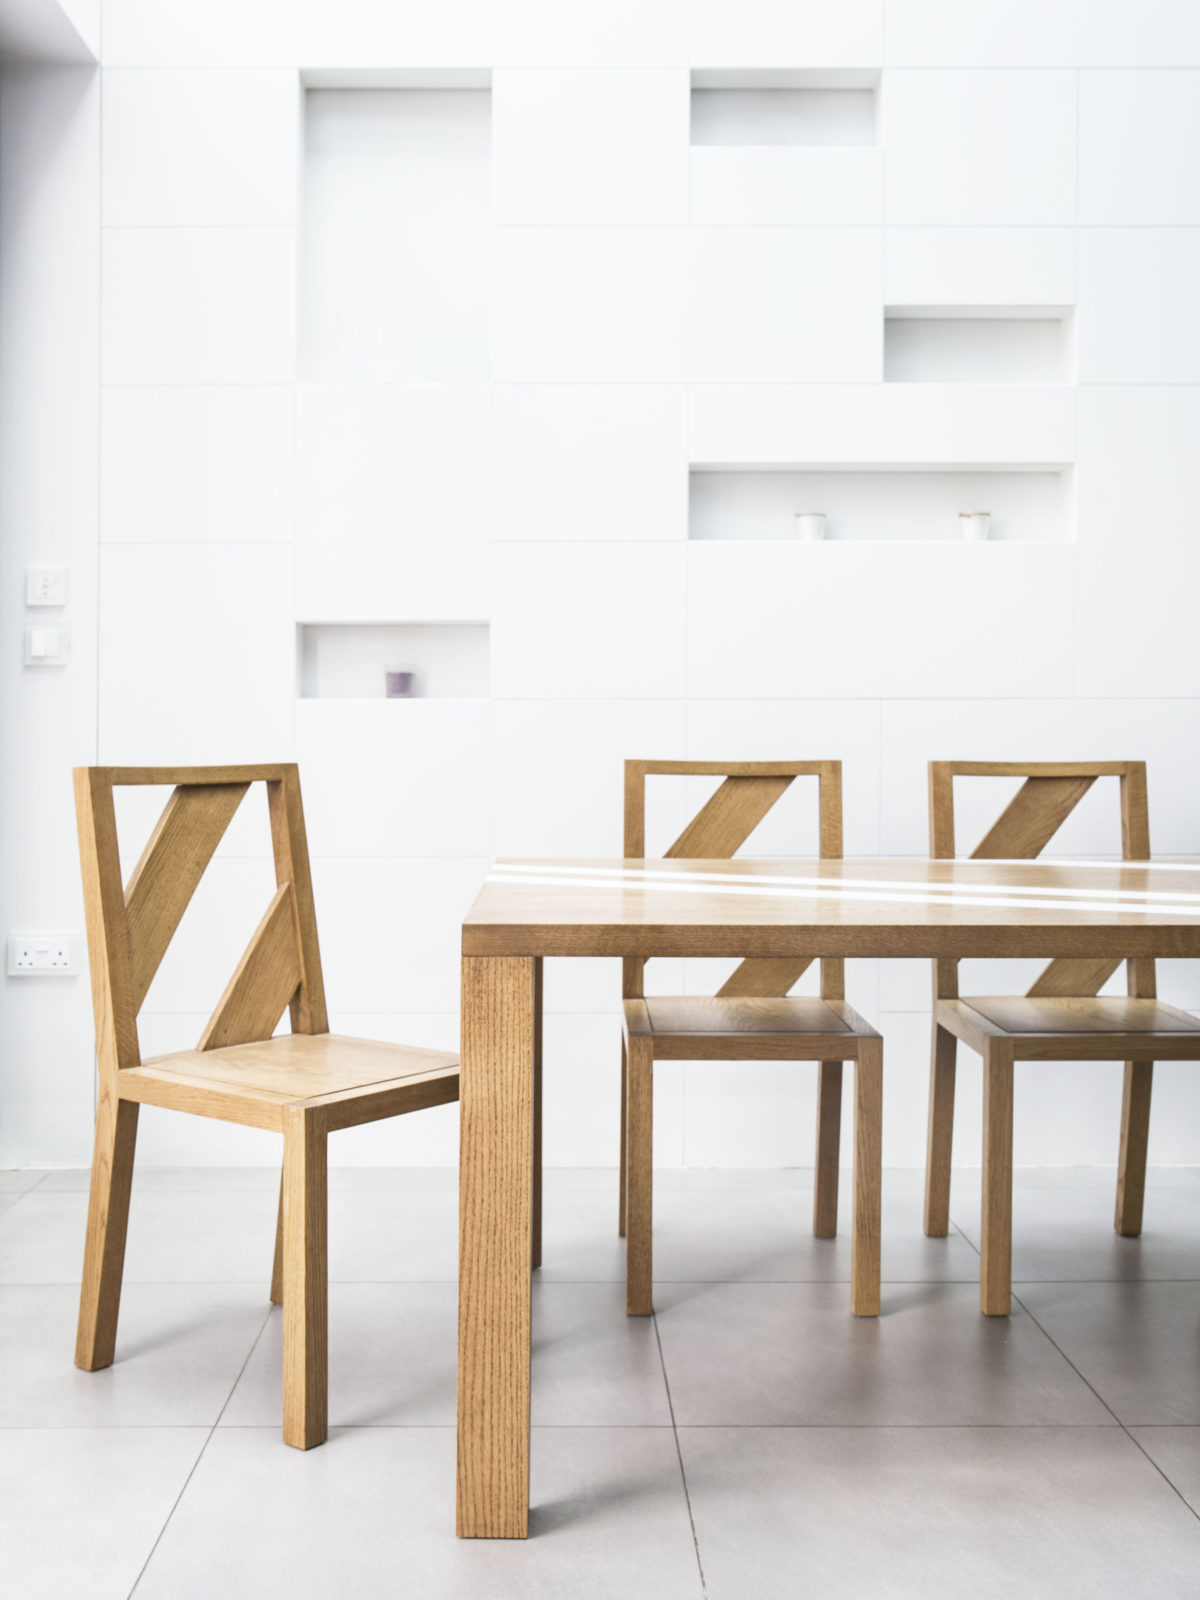 Oak dining tablenset with matching chairs